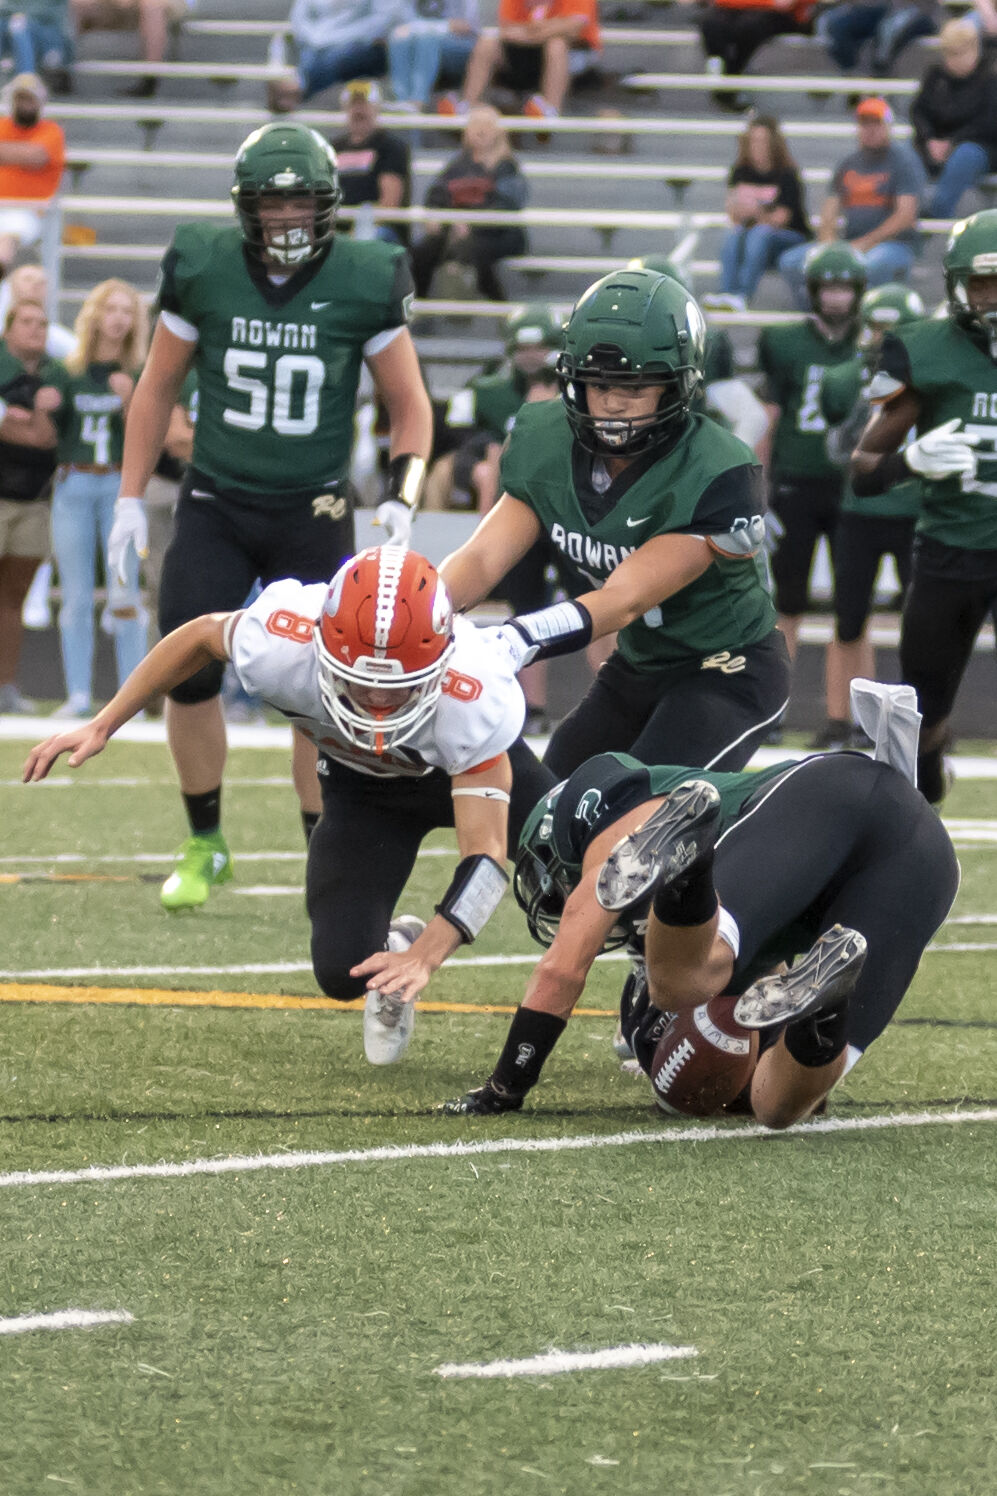 Conner Hughes dives for a loose ball as Rowan tries to maintain possession.JPG